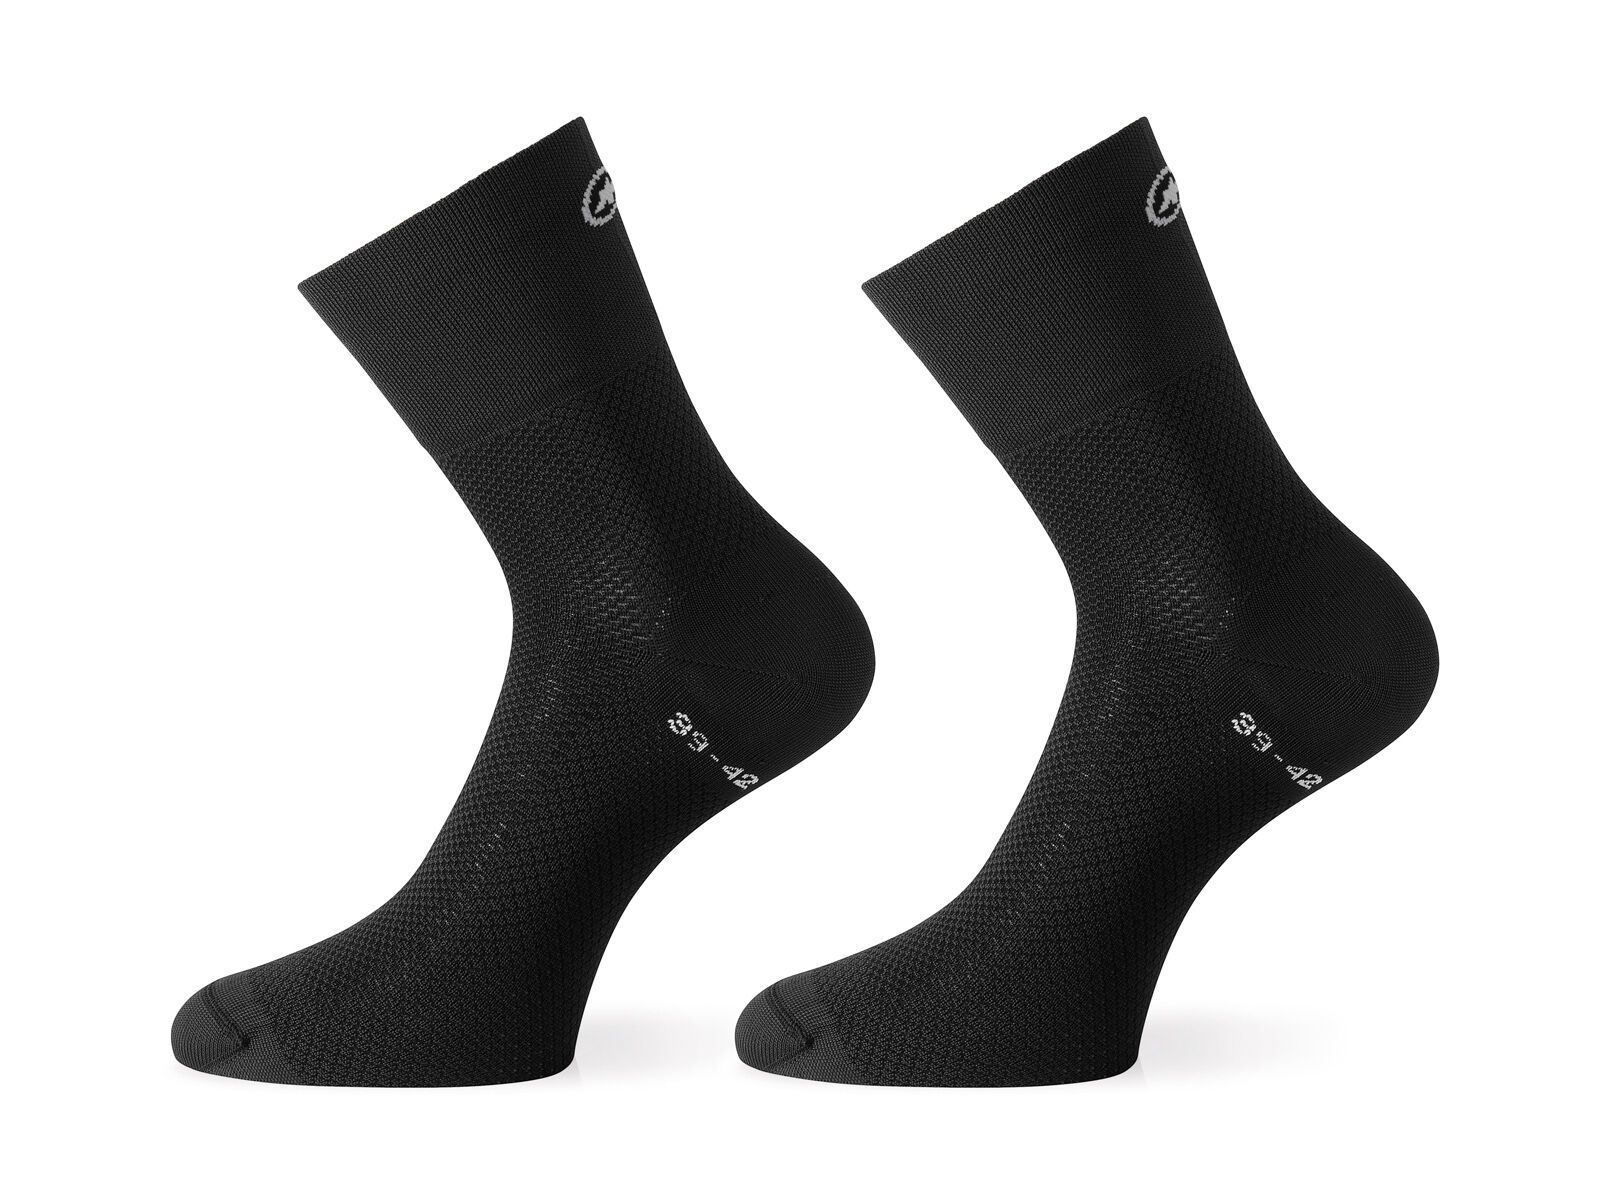 Assos Assosoires GT Socks blackseries 40-43 P13.60.668.18.I